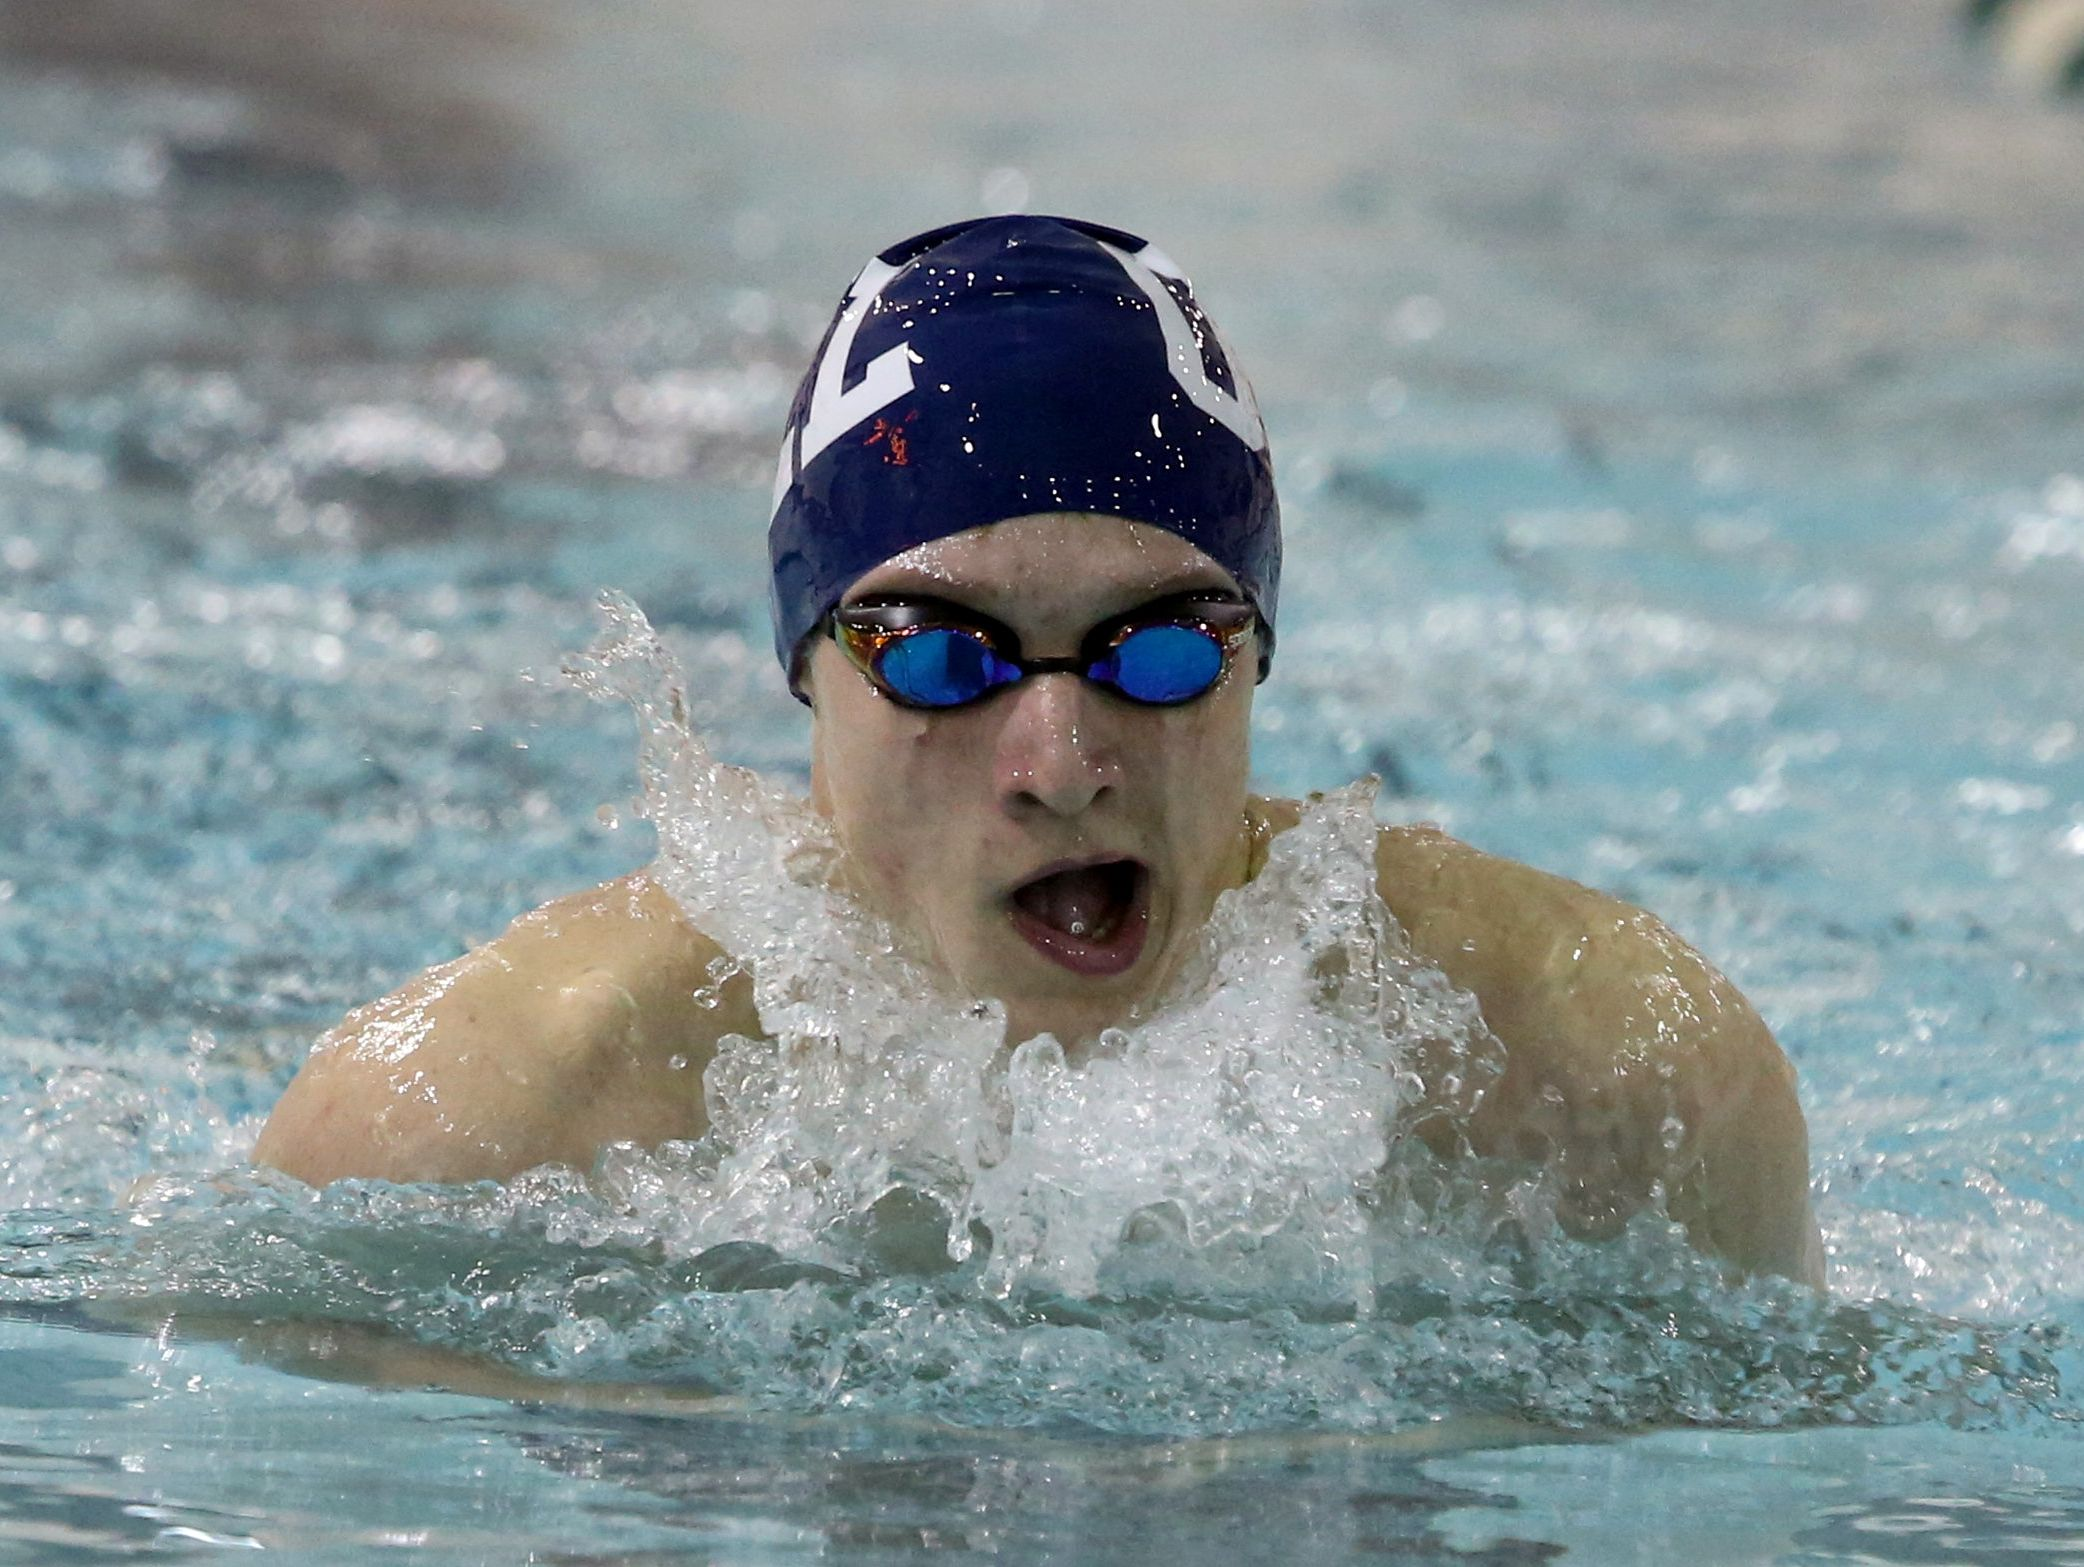 Christian Thomas of Our Lady of Lourdes swims the breaststroke leg of the 200 yard individual medley during a meet against Yorktown at the Mildred E. Strang Middle School in Yorktown Jan. 12, 2016.